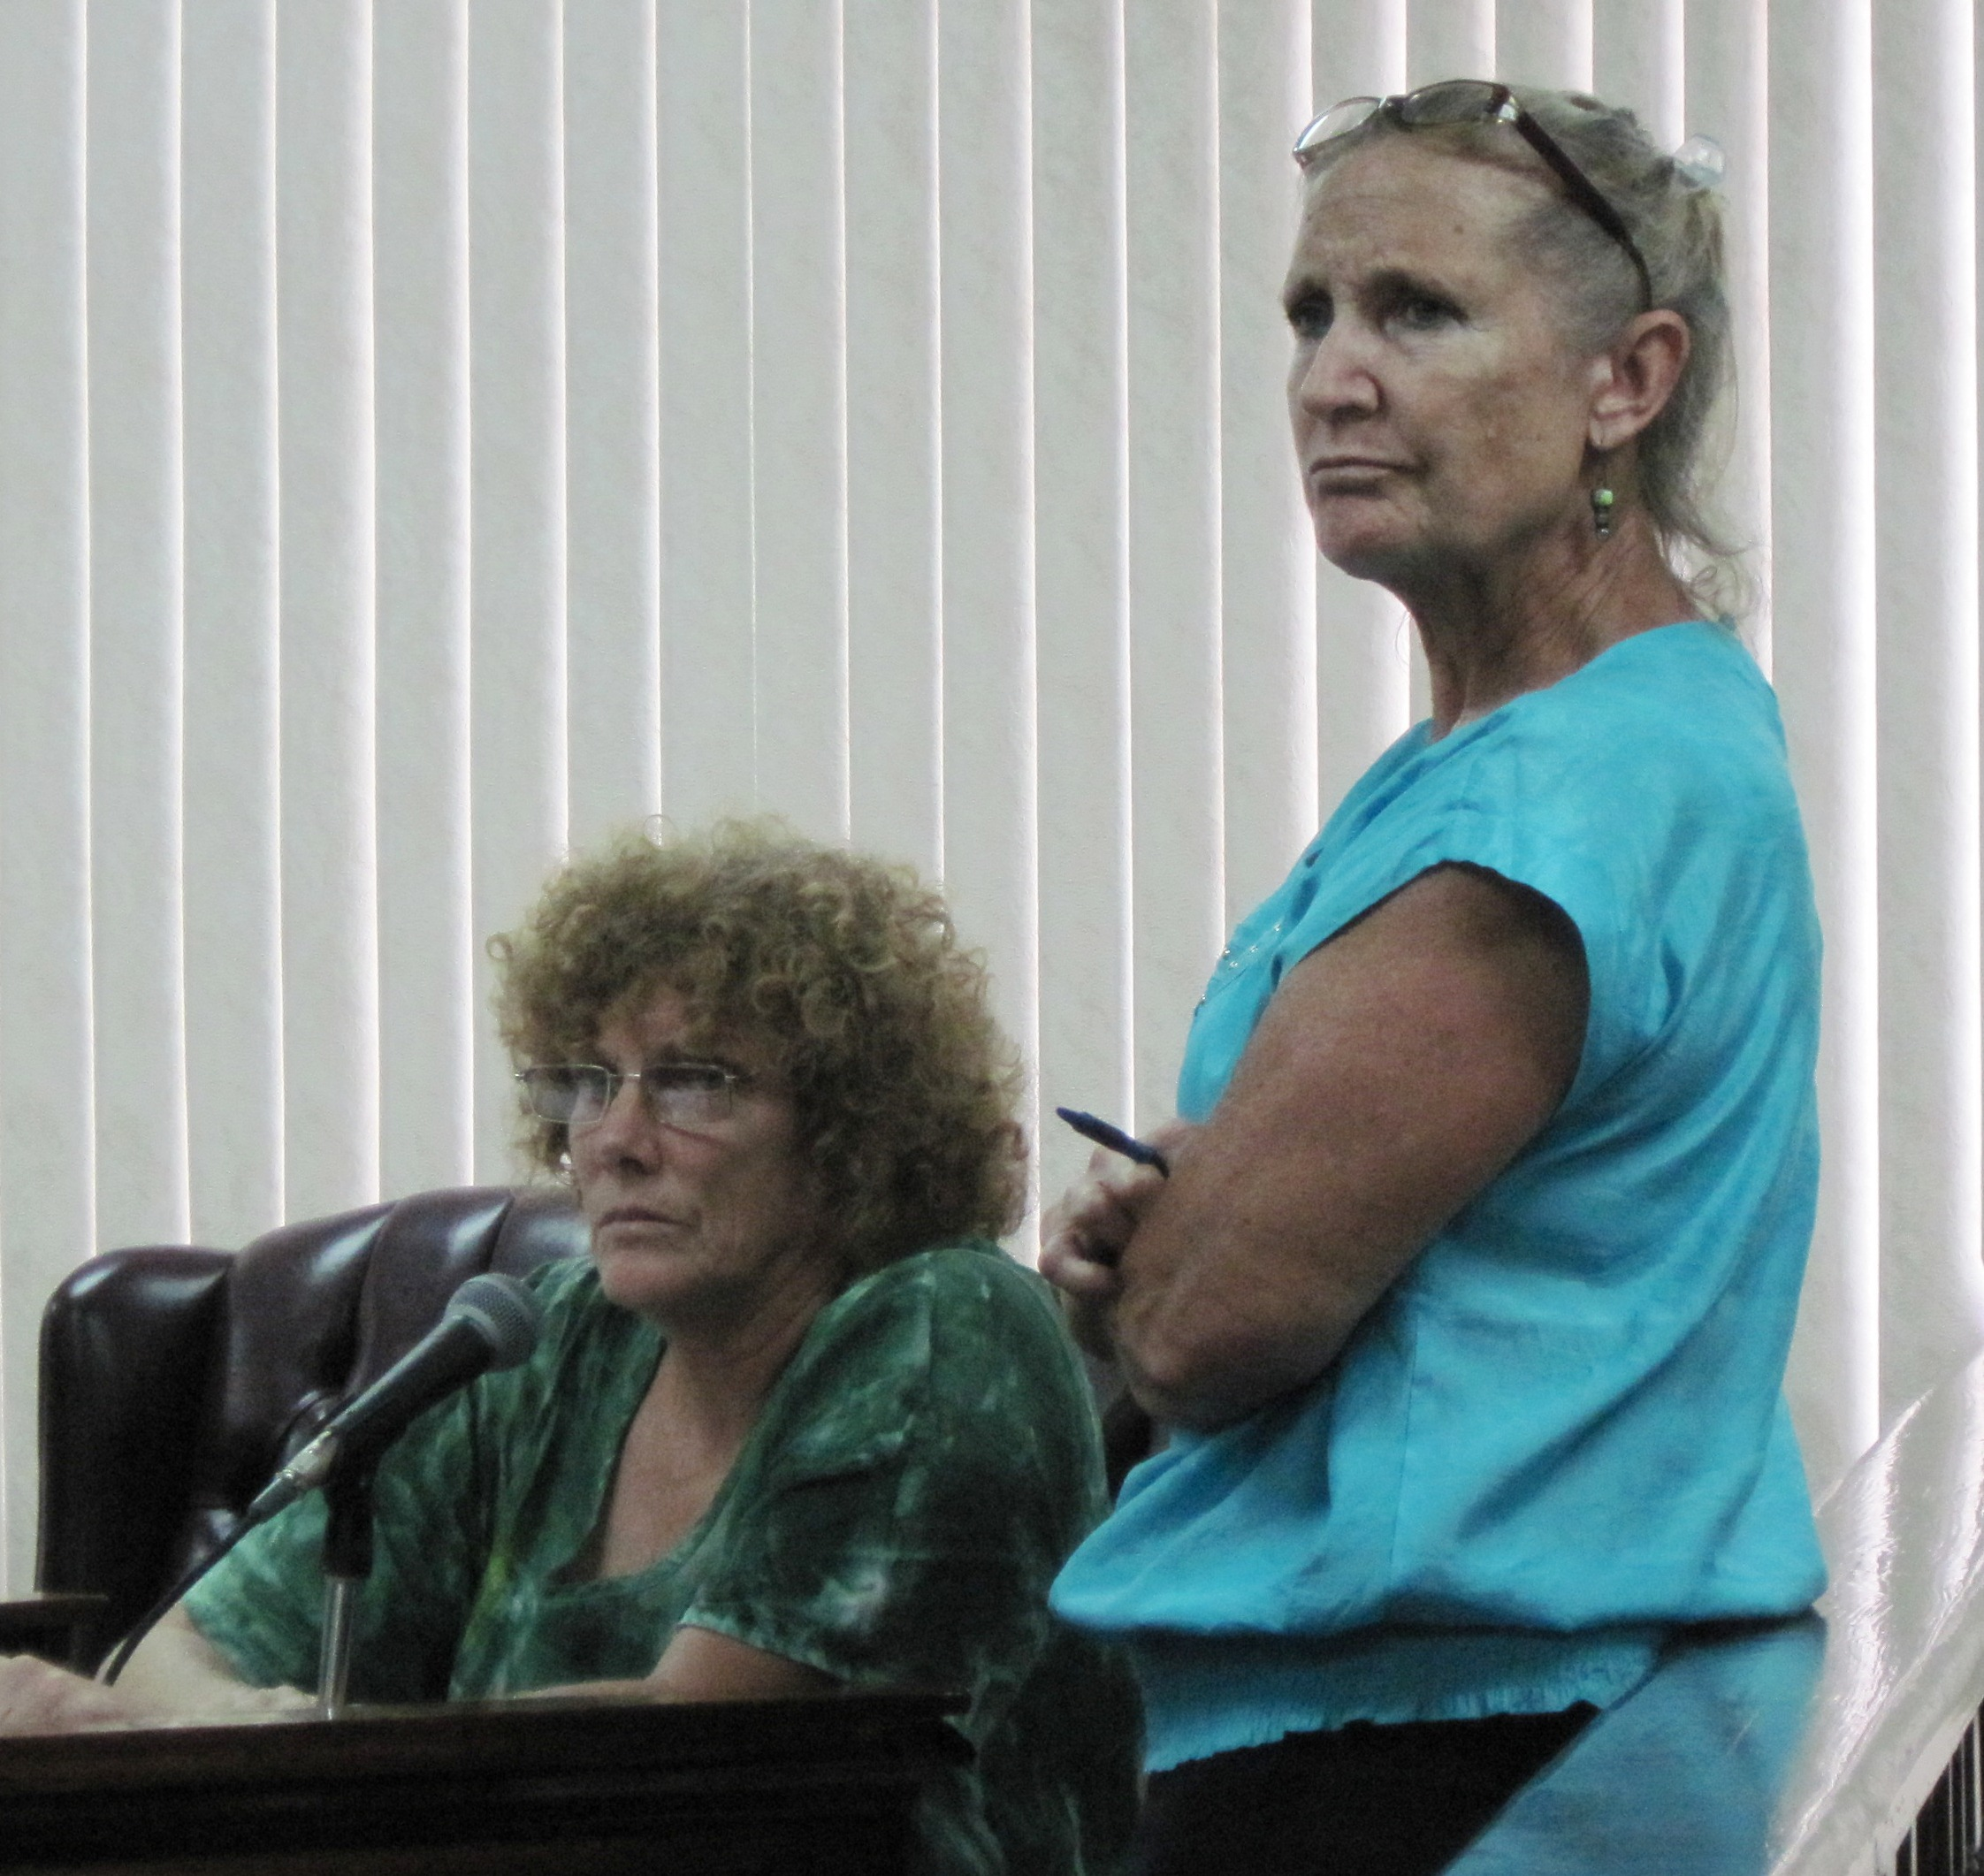 St. John residents Pam Gaffin and Catherine Fahy argued unsuccessfully that residents were not informed about the condo project's permit.